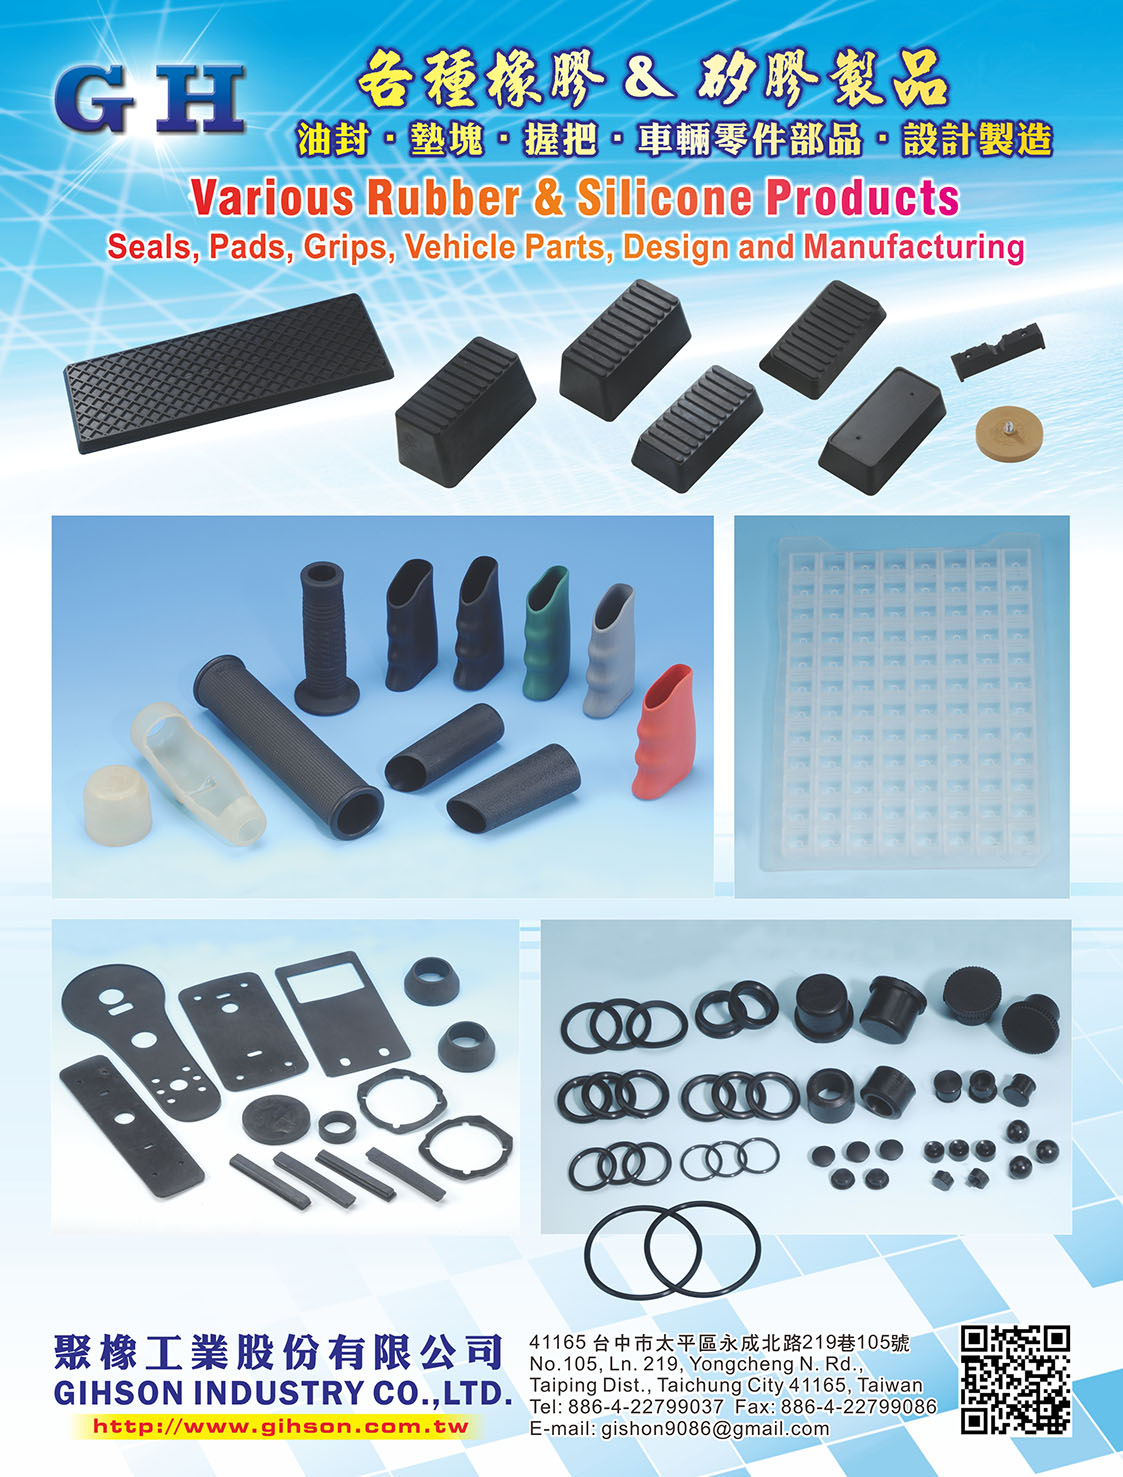 GIHSON INDUSTRY CO.,LTD.